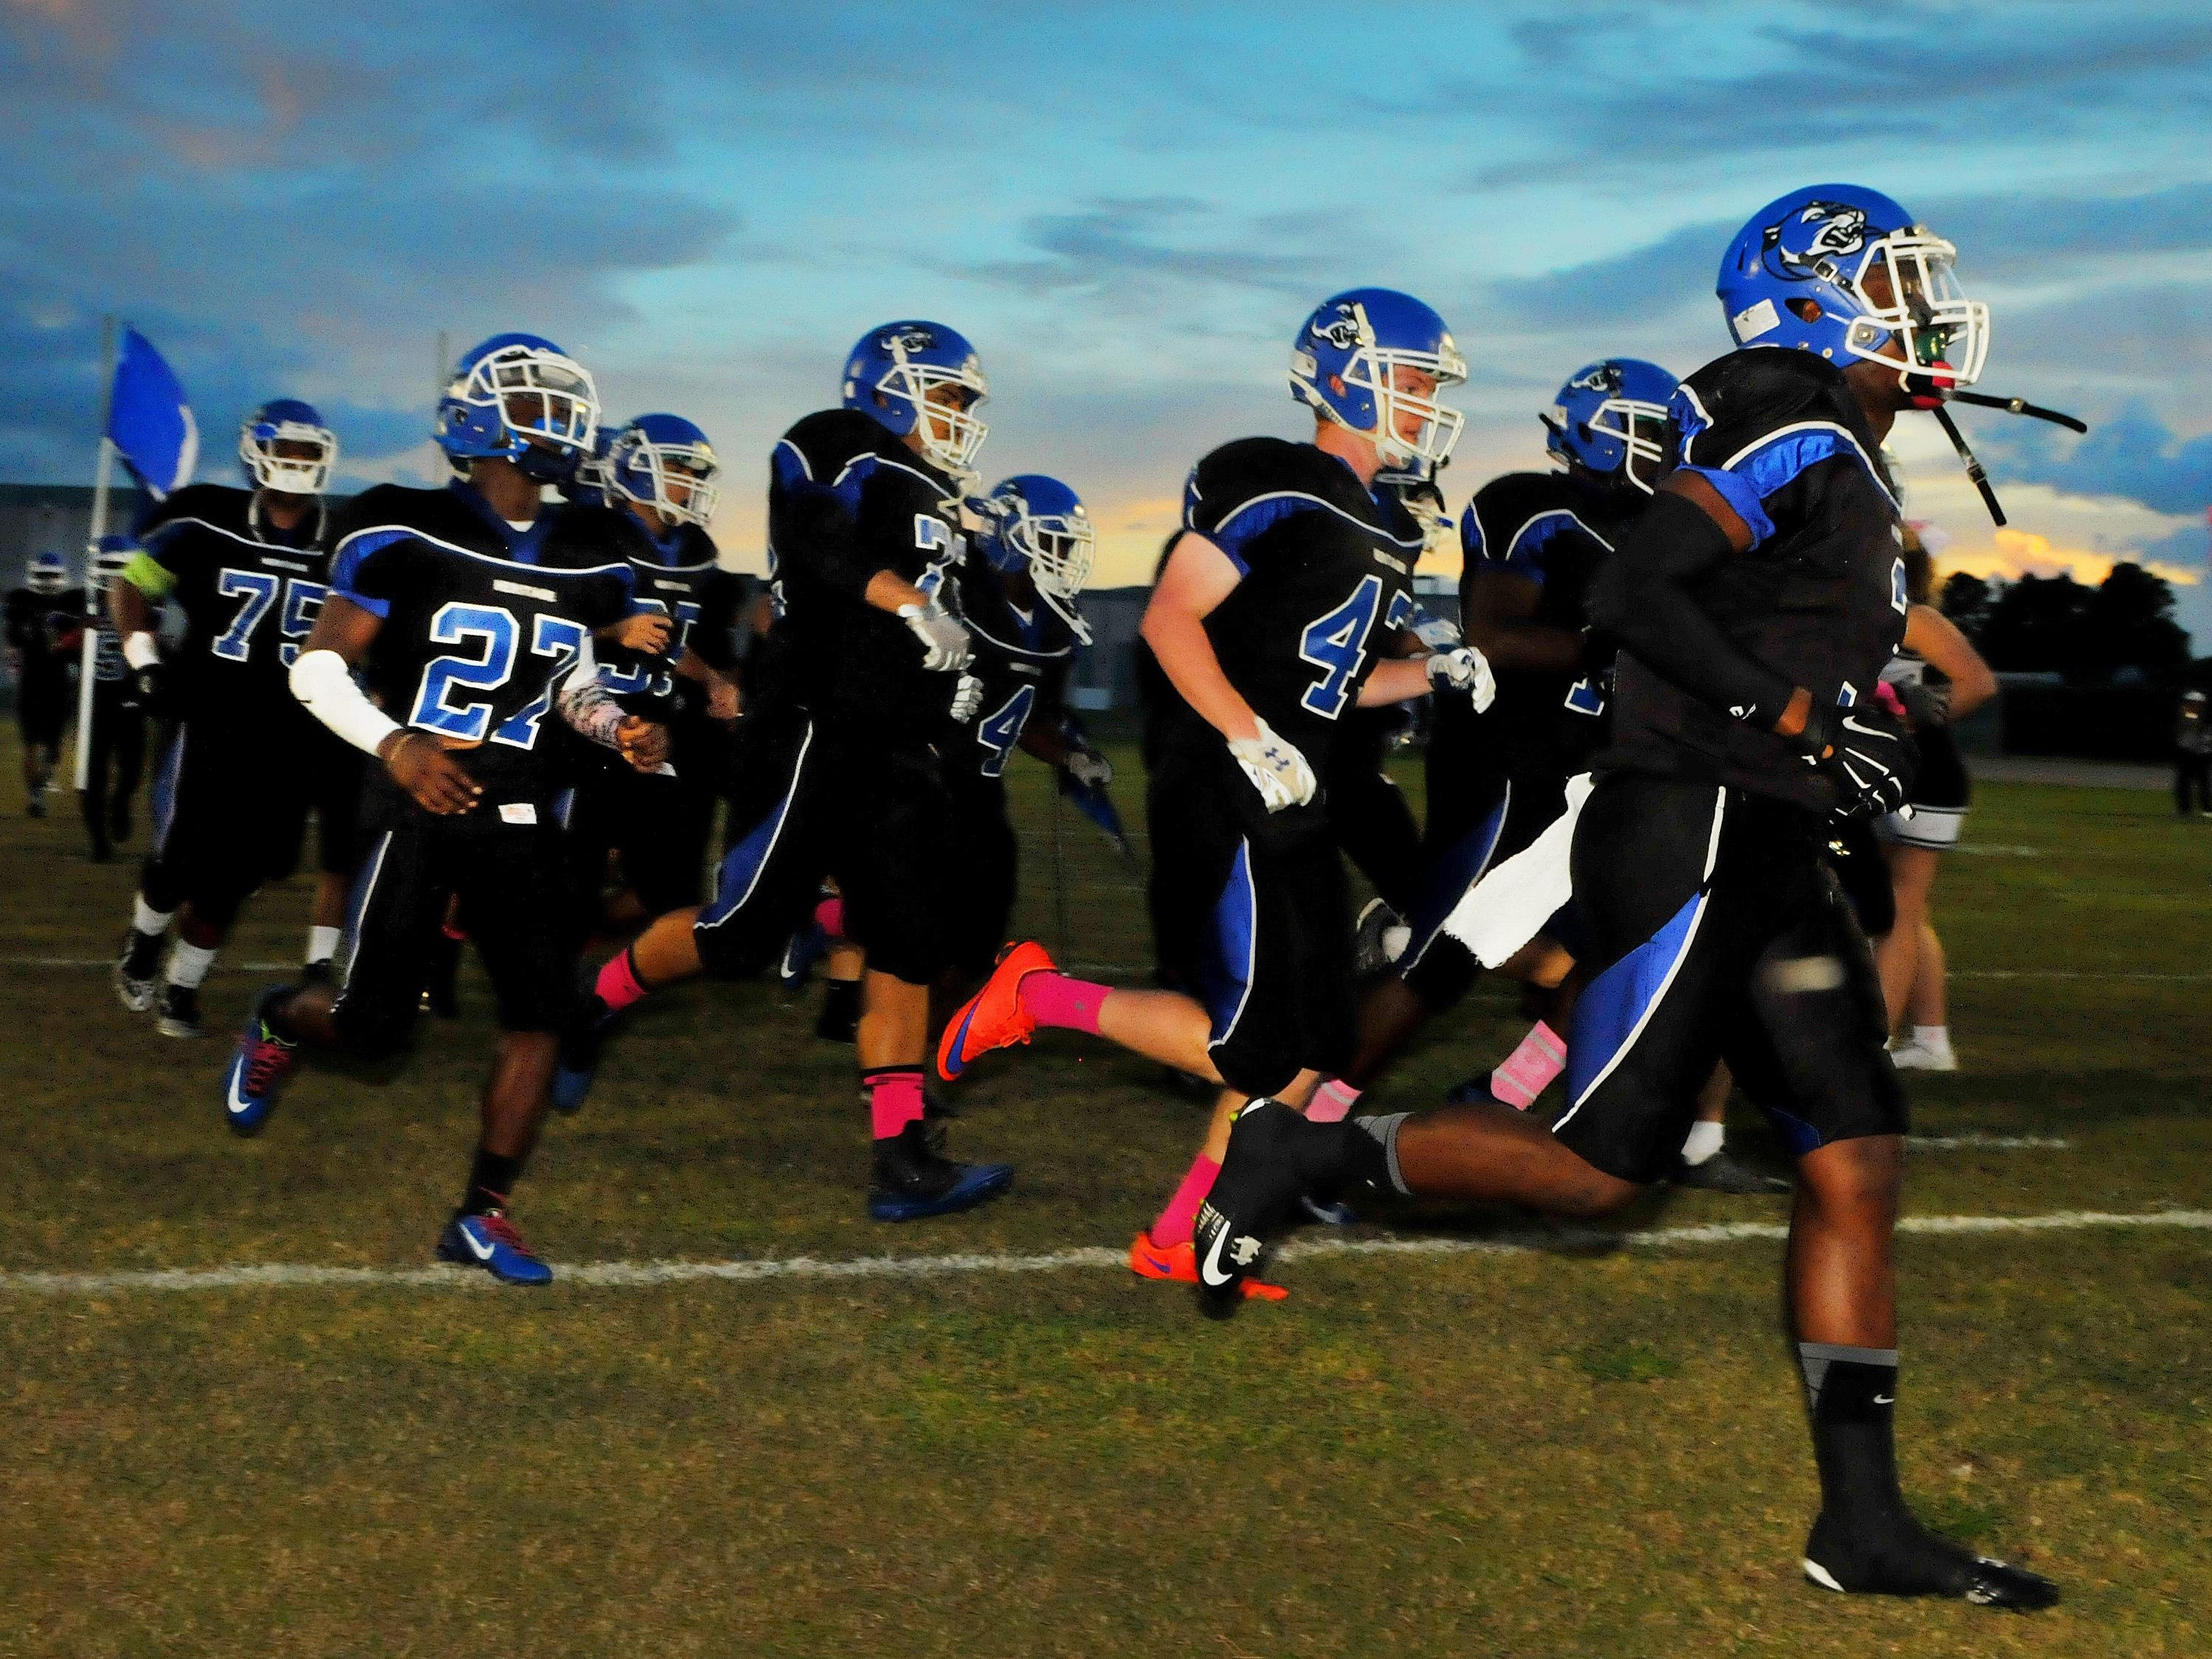 Heritage High headed to south to play at Jensen Beach High on Friday night.